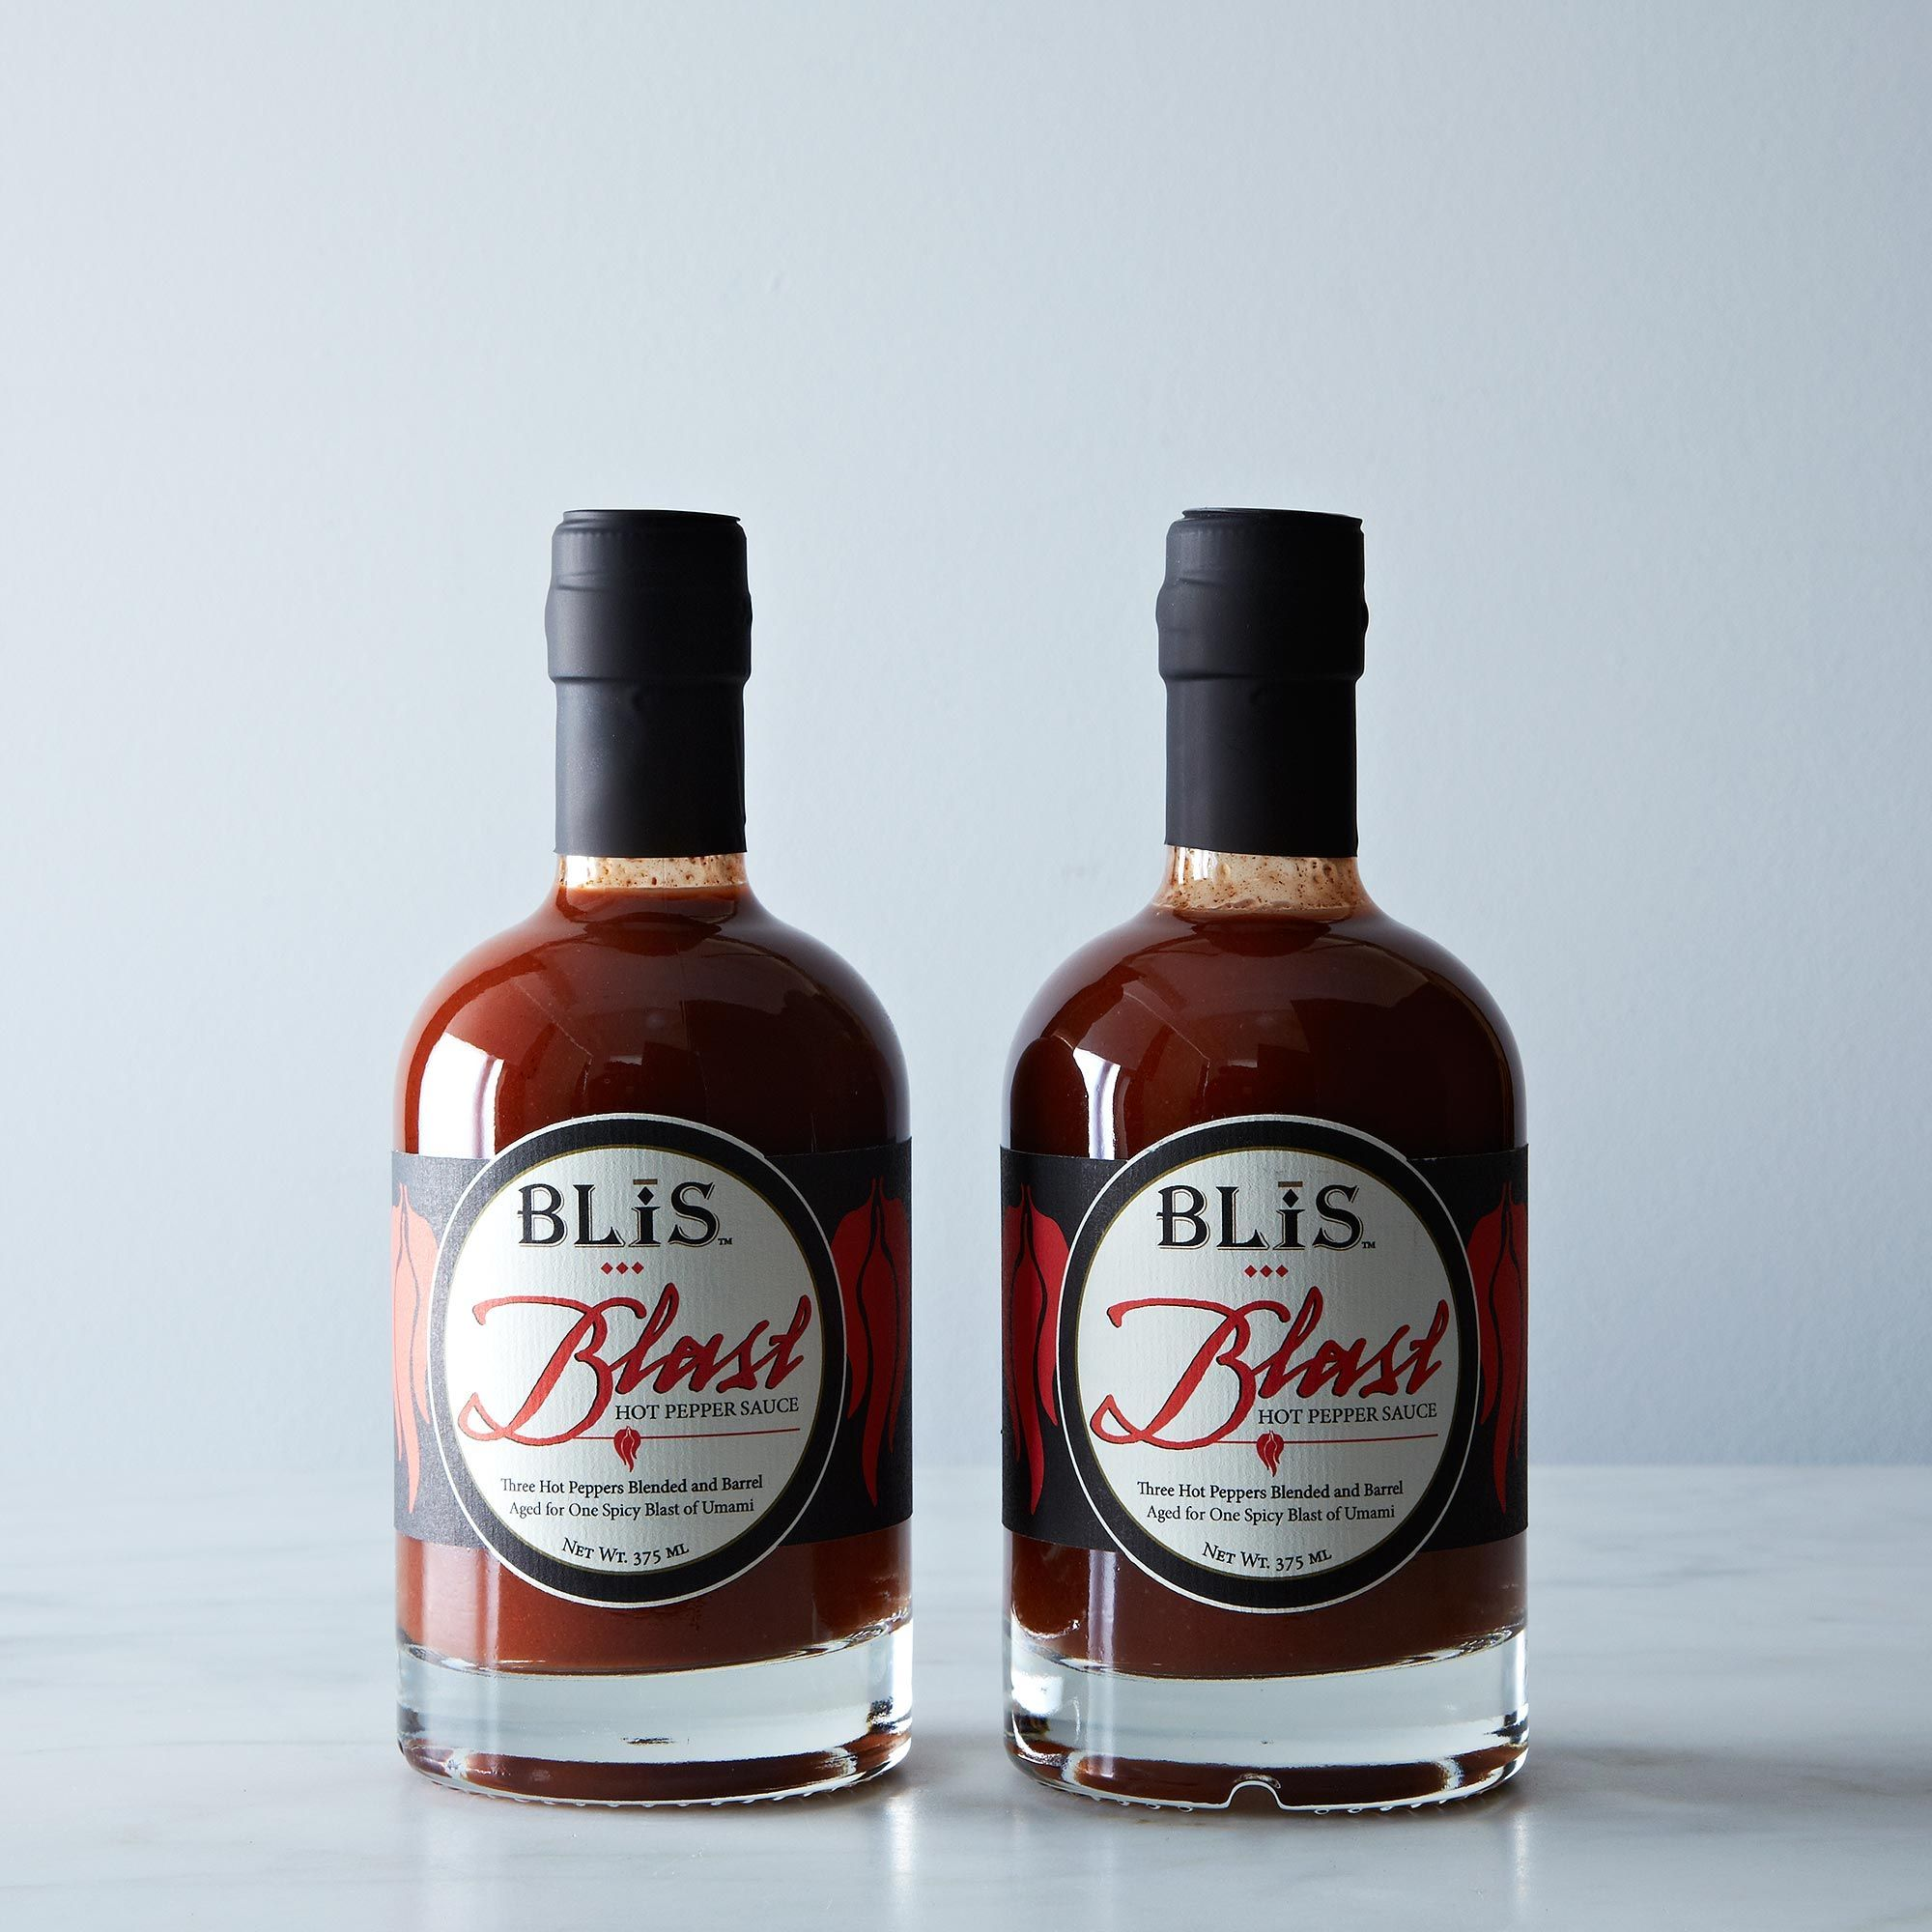 2eafa509 cb0f 4743 8489 f89664665fd3  2013 1123 blis blis blast bourbon hot pepper sauce set of 2 008